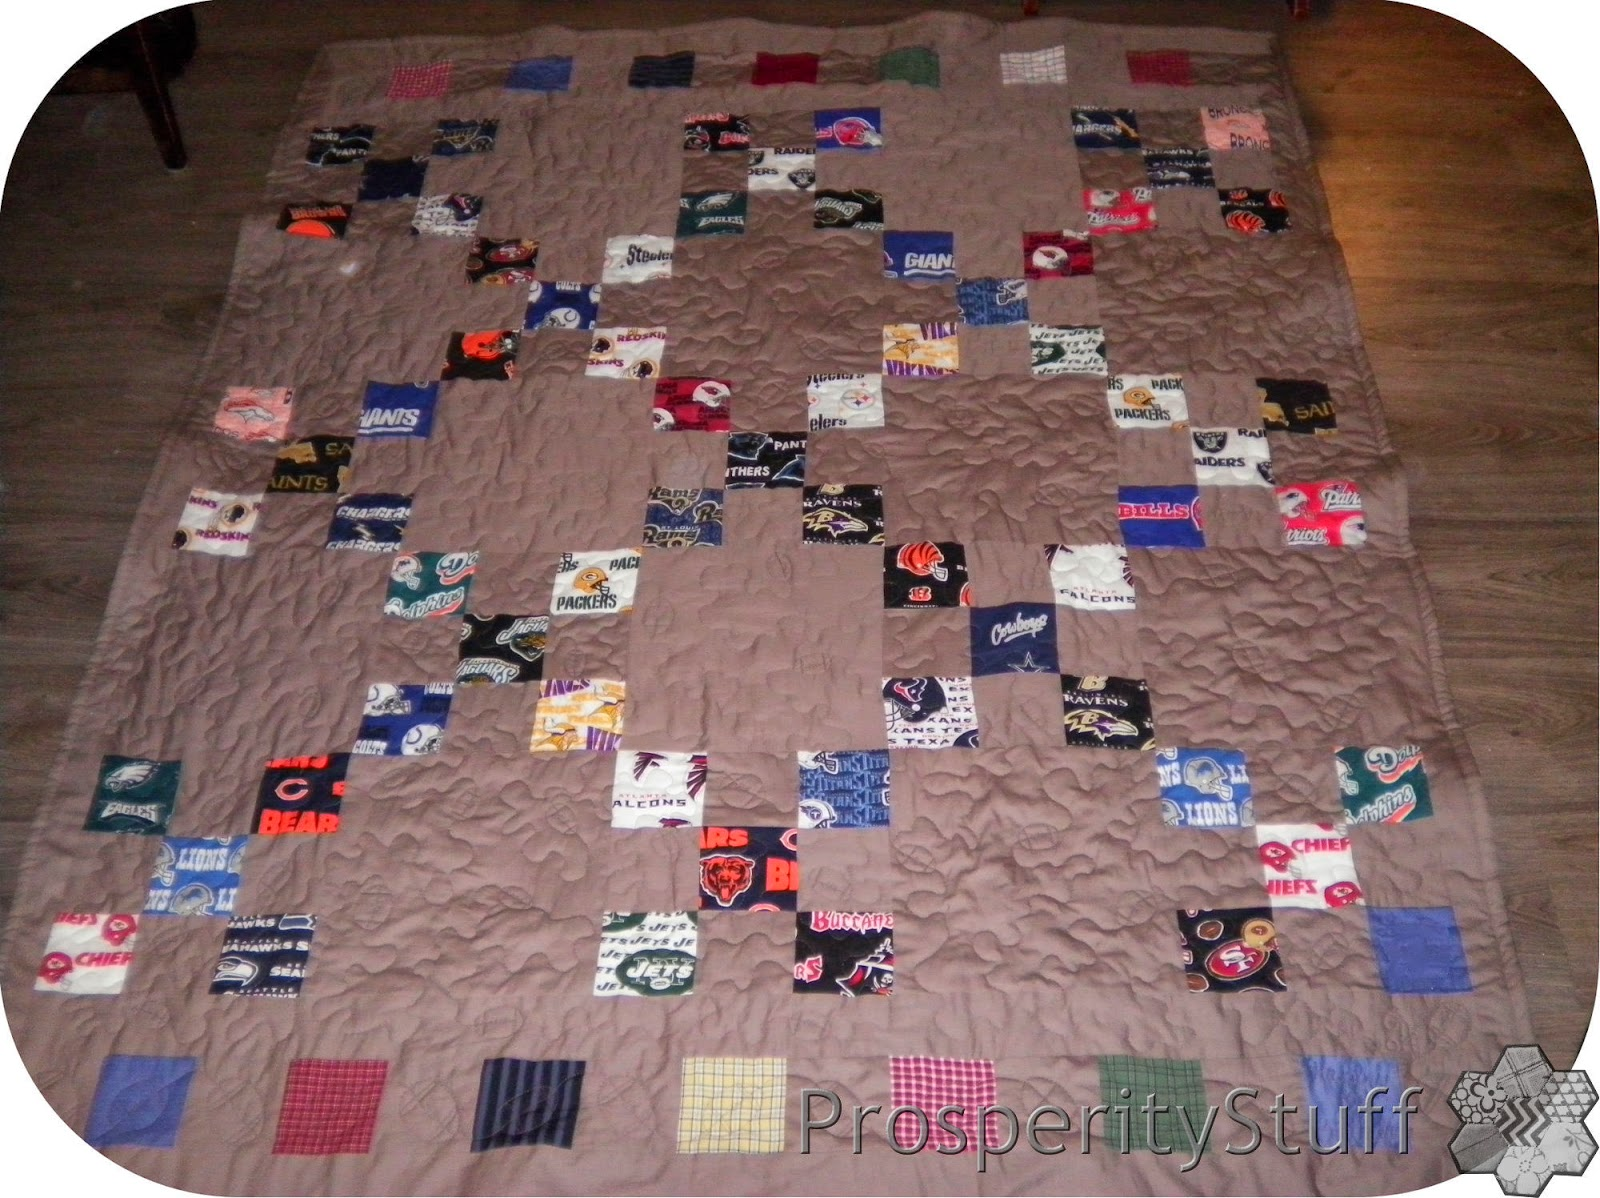 ProsperityStuff NFL Football Quilt, finished